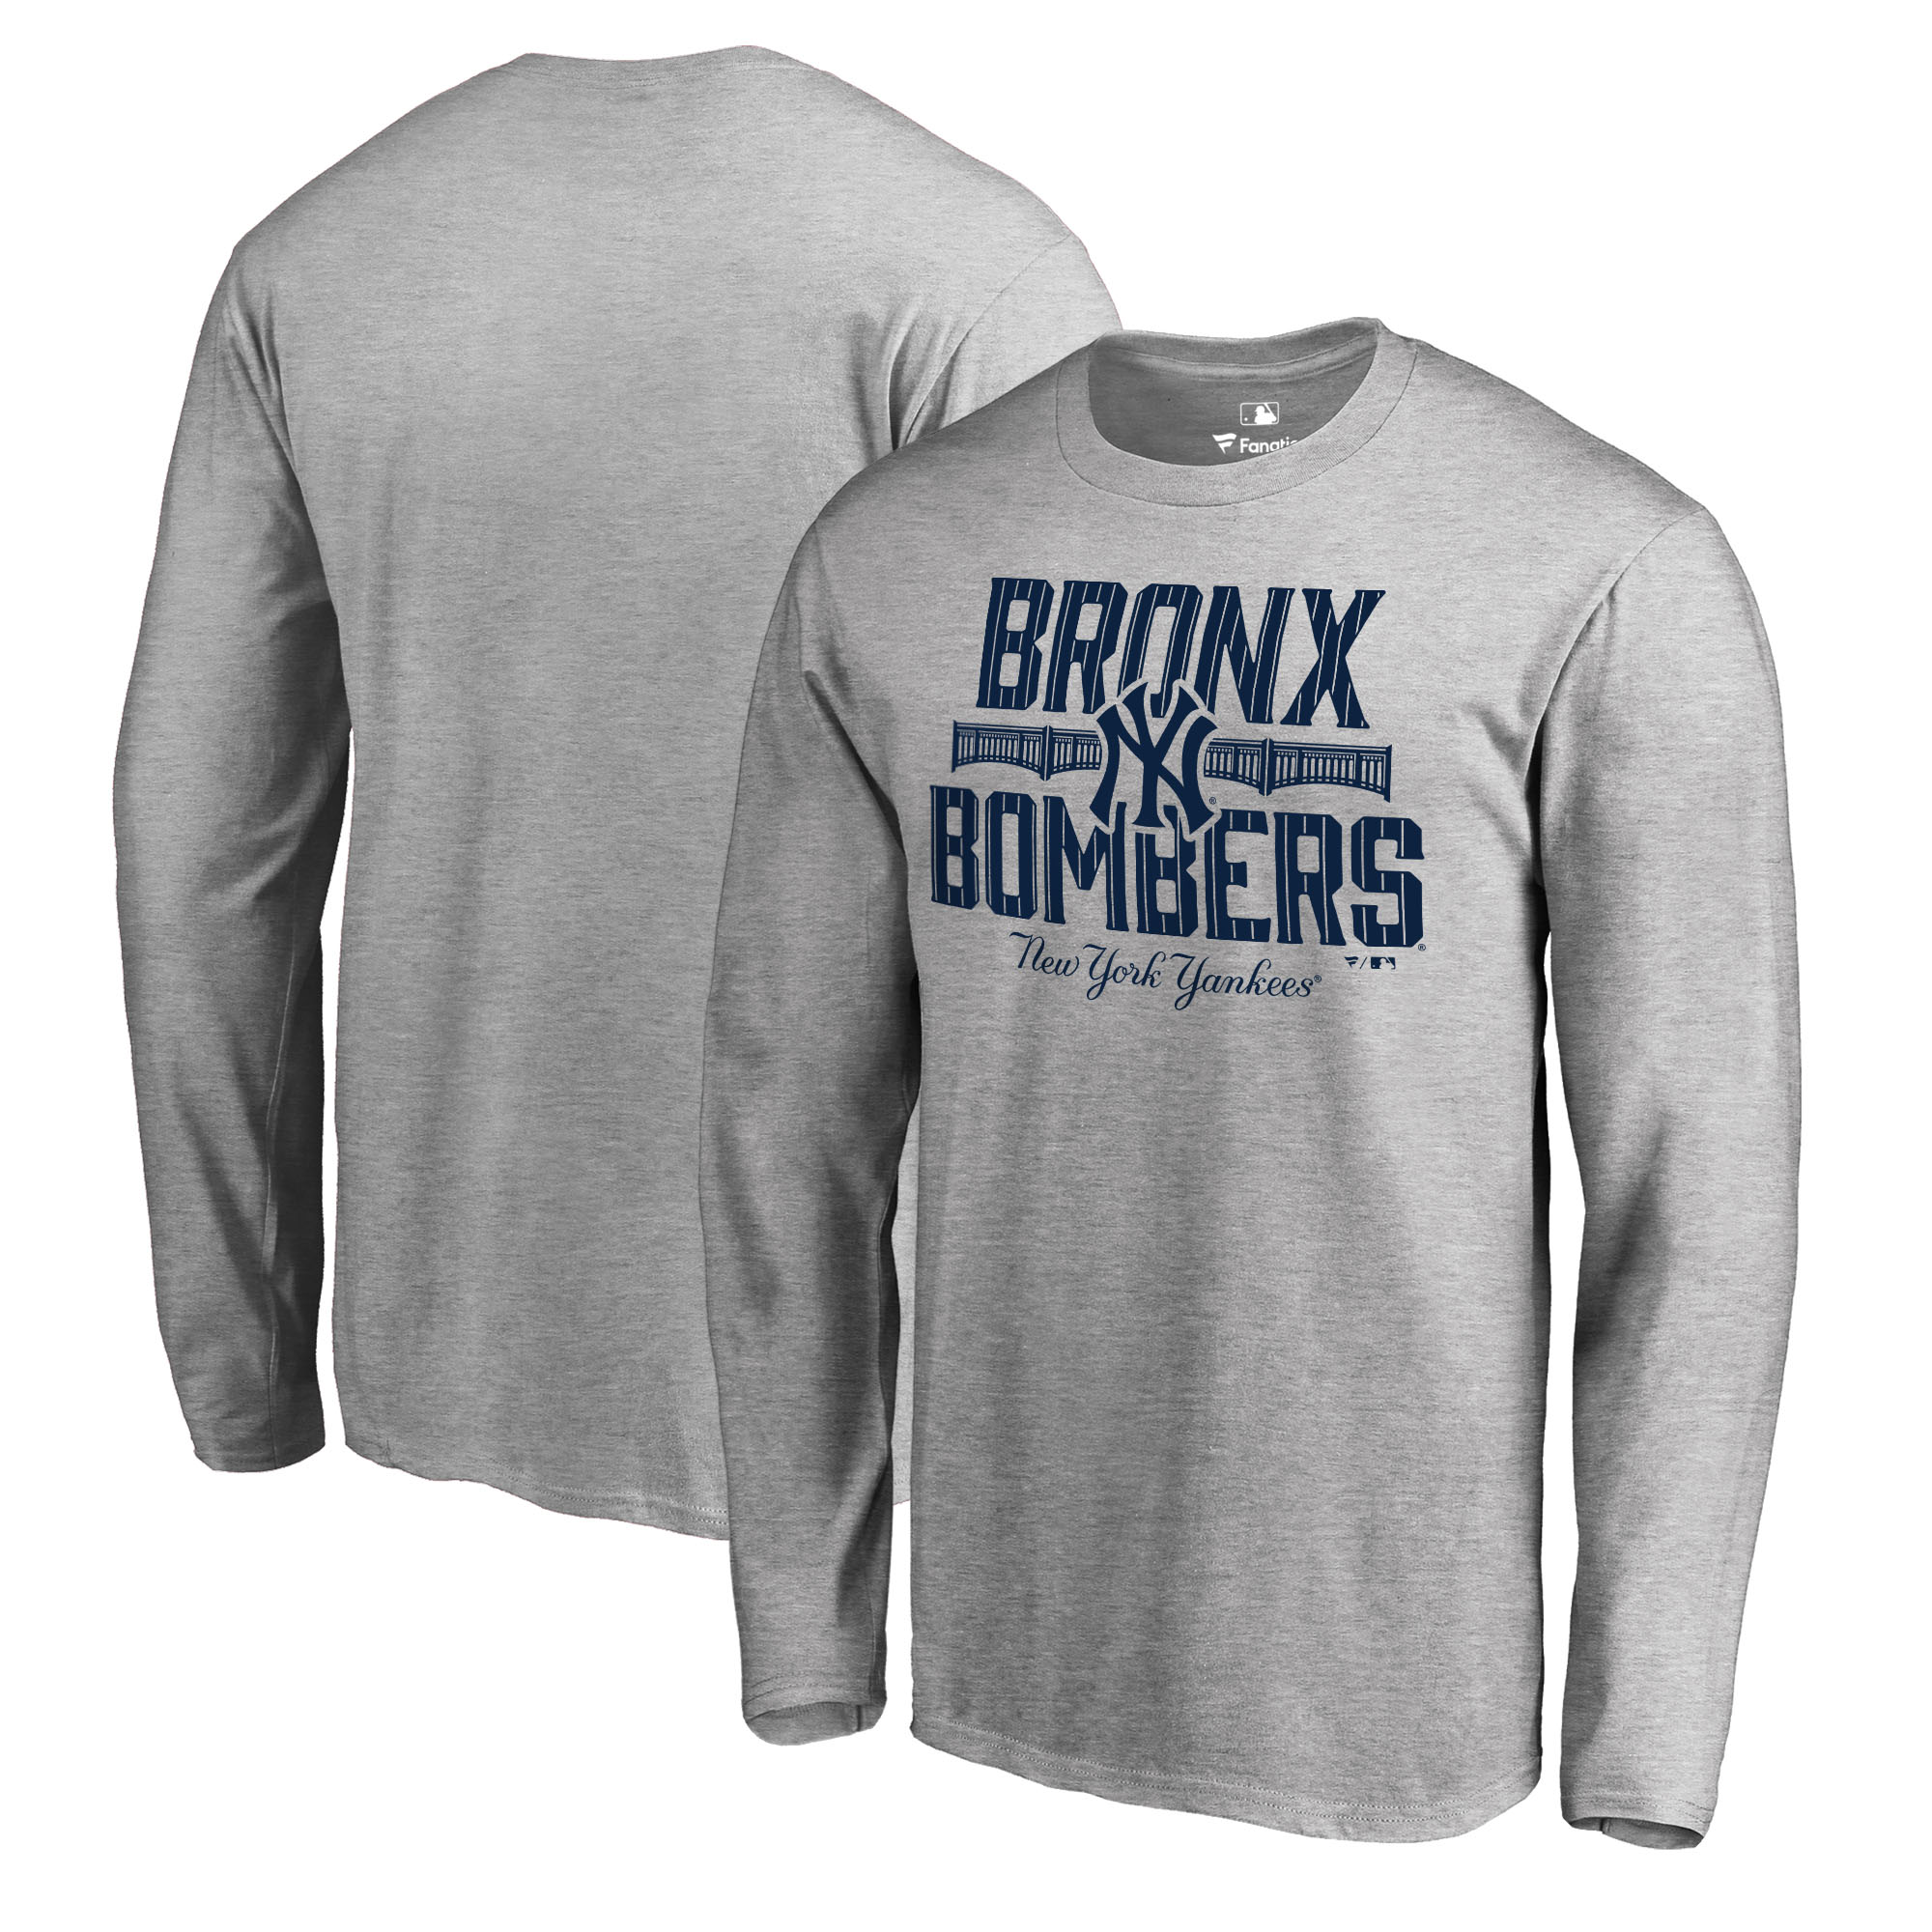 New York Yankees Fanatics Branded Big & Tall The Bombers Hometown Collection Long Sleeve T-Shirt - Heathered Gray